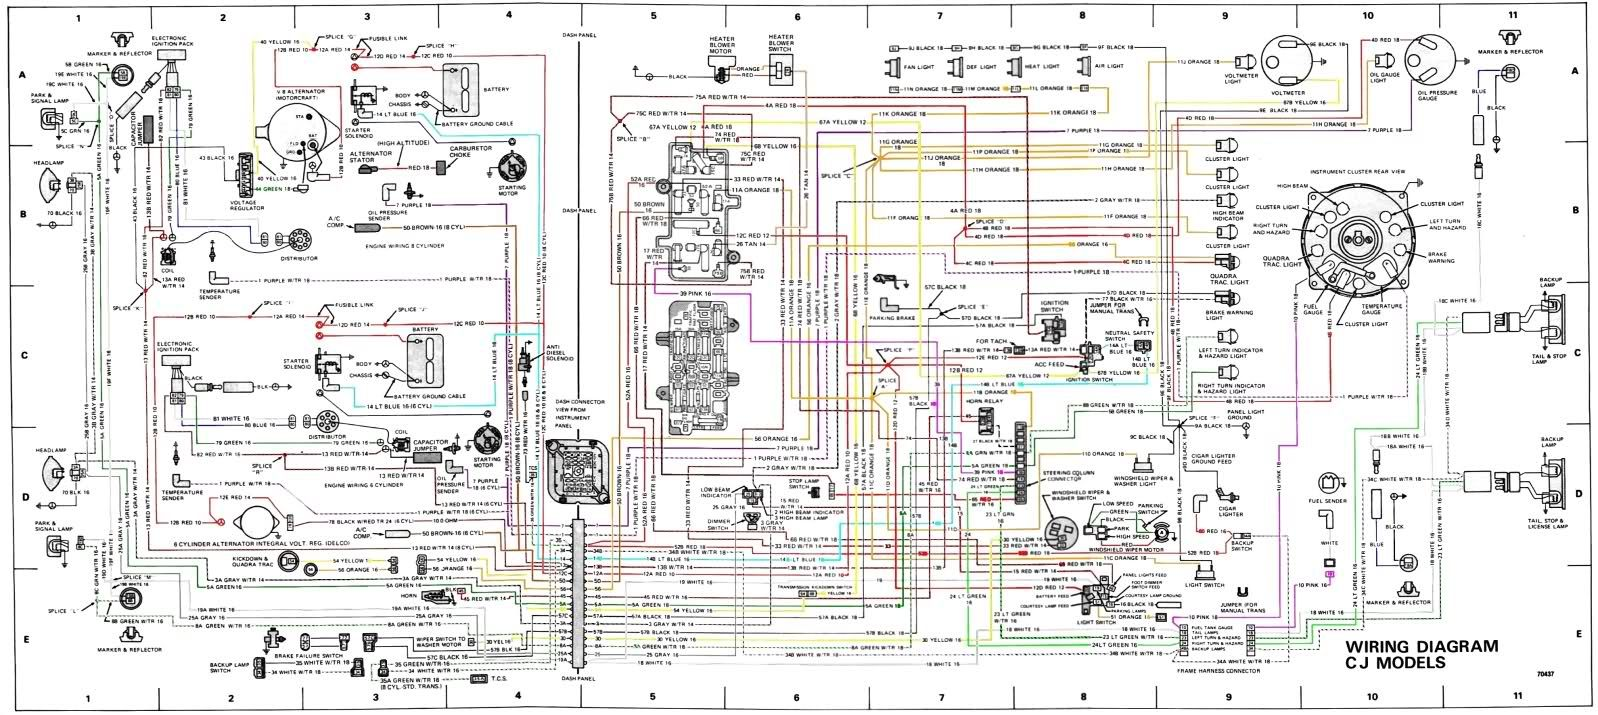 jeep cj7 wiring diagram wiring diagram data schemacj 7 wiring diagram blog wiring diagram jeep cj7 [ 1598 x 715 Pixel ]